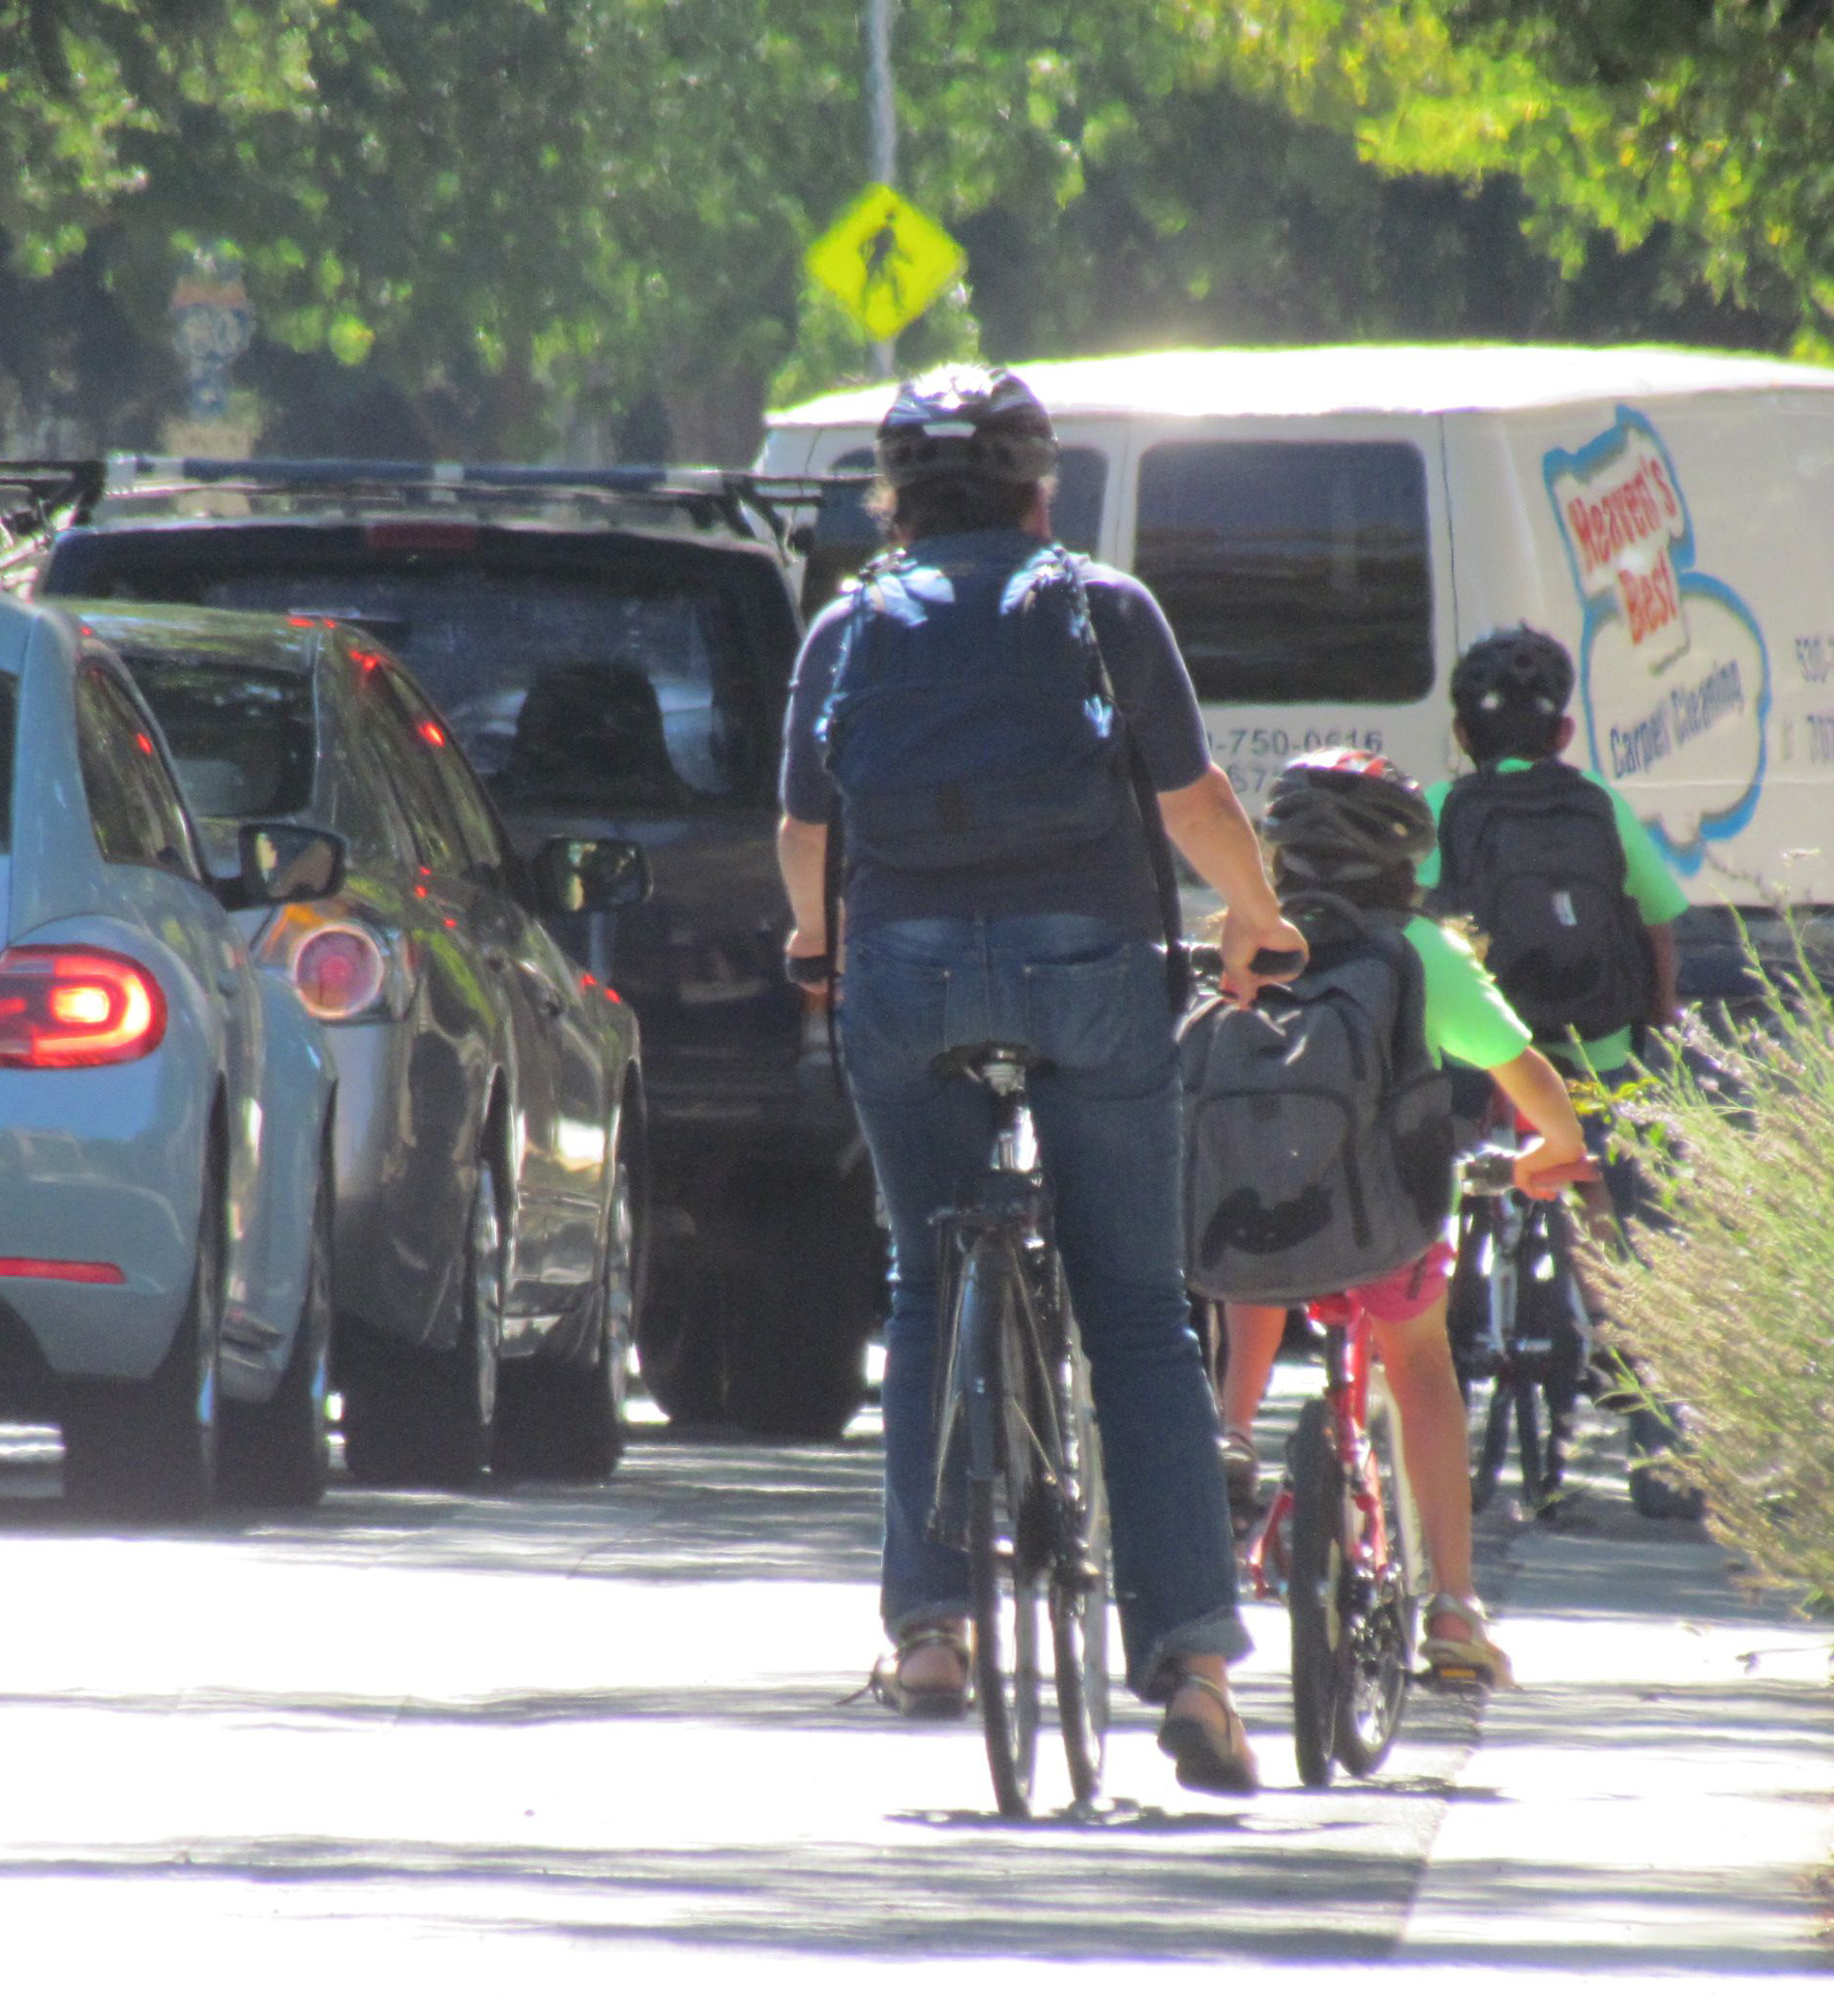 The Active Transportation Program provides funds to encourage people to get out of their cars. Image: Melanie Curry/Streetsblog